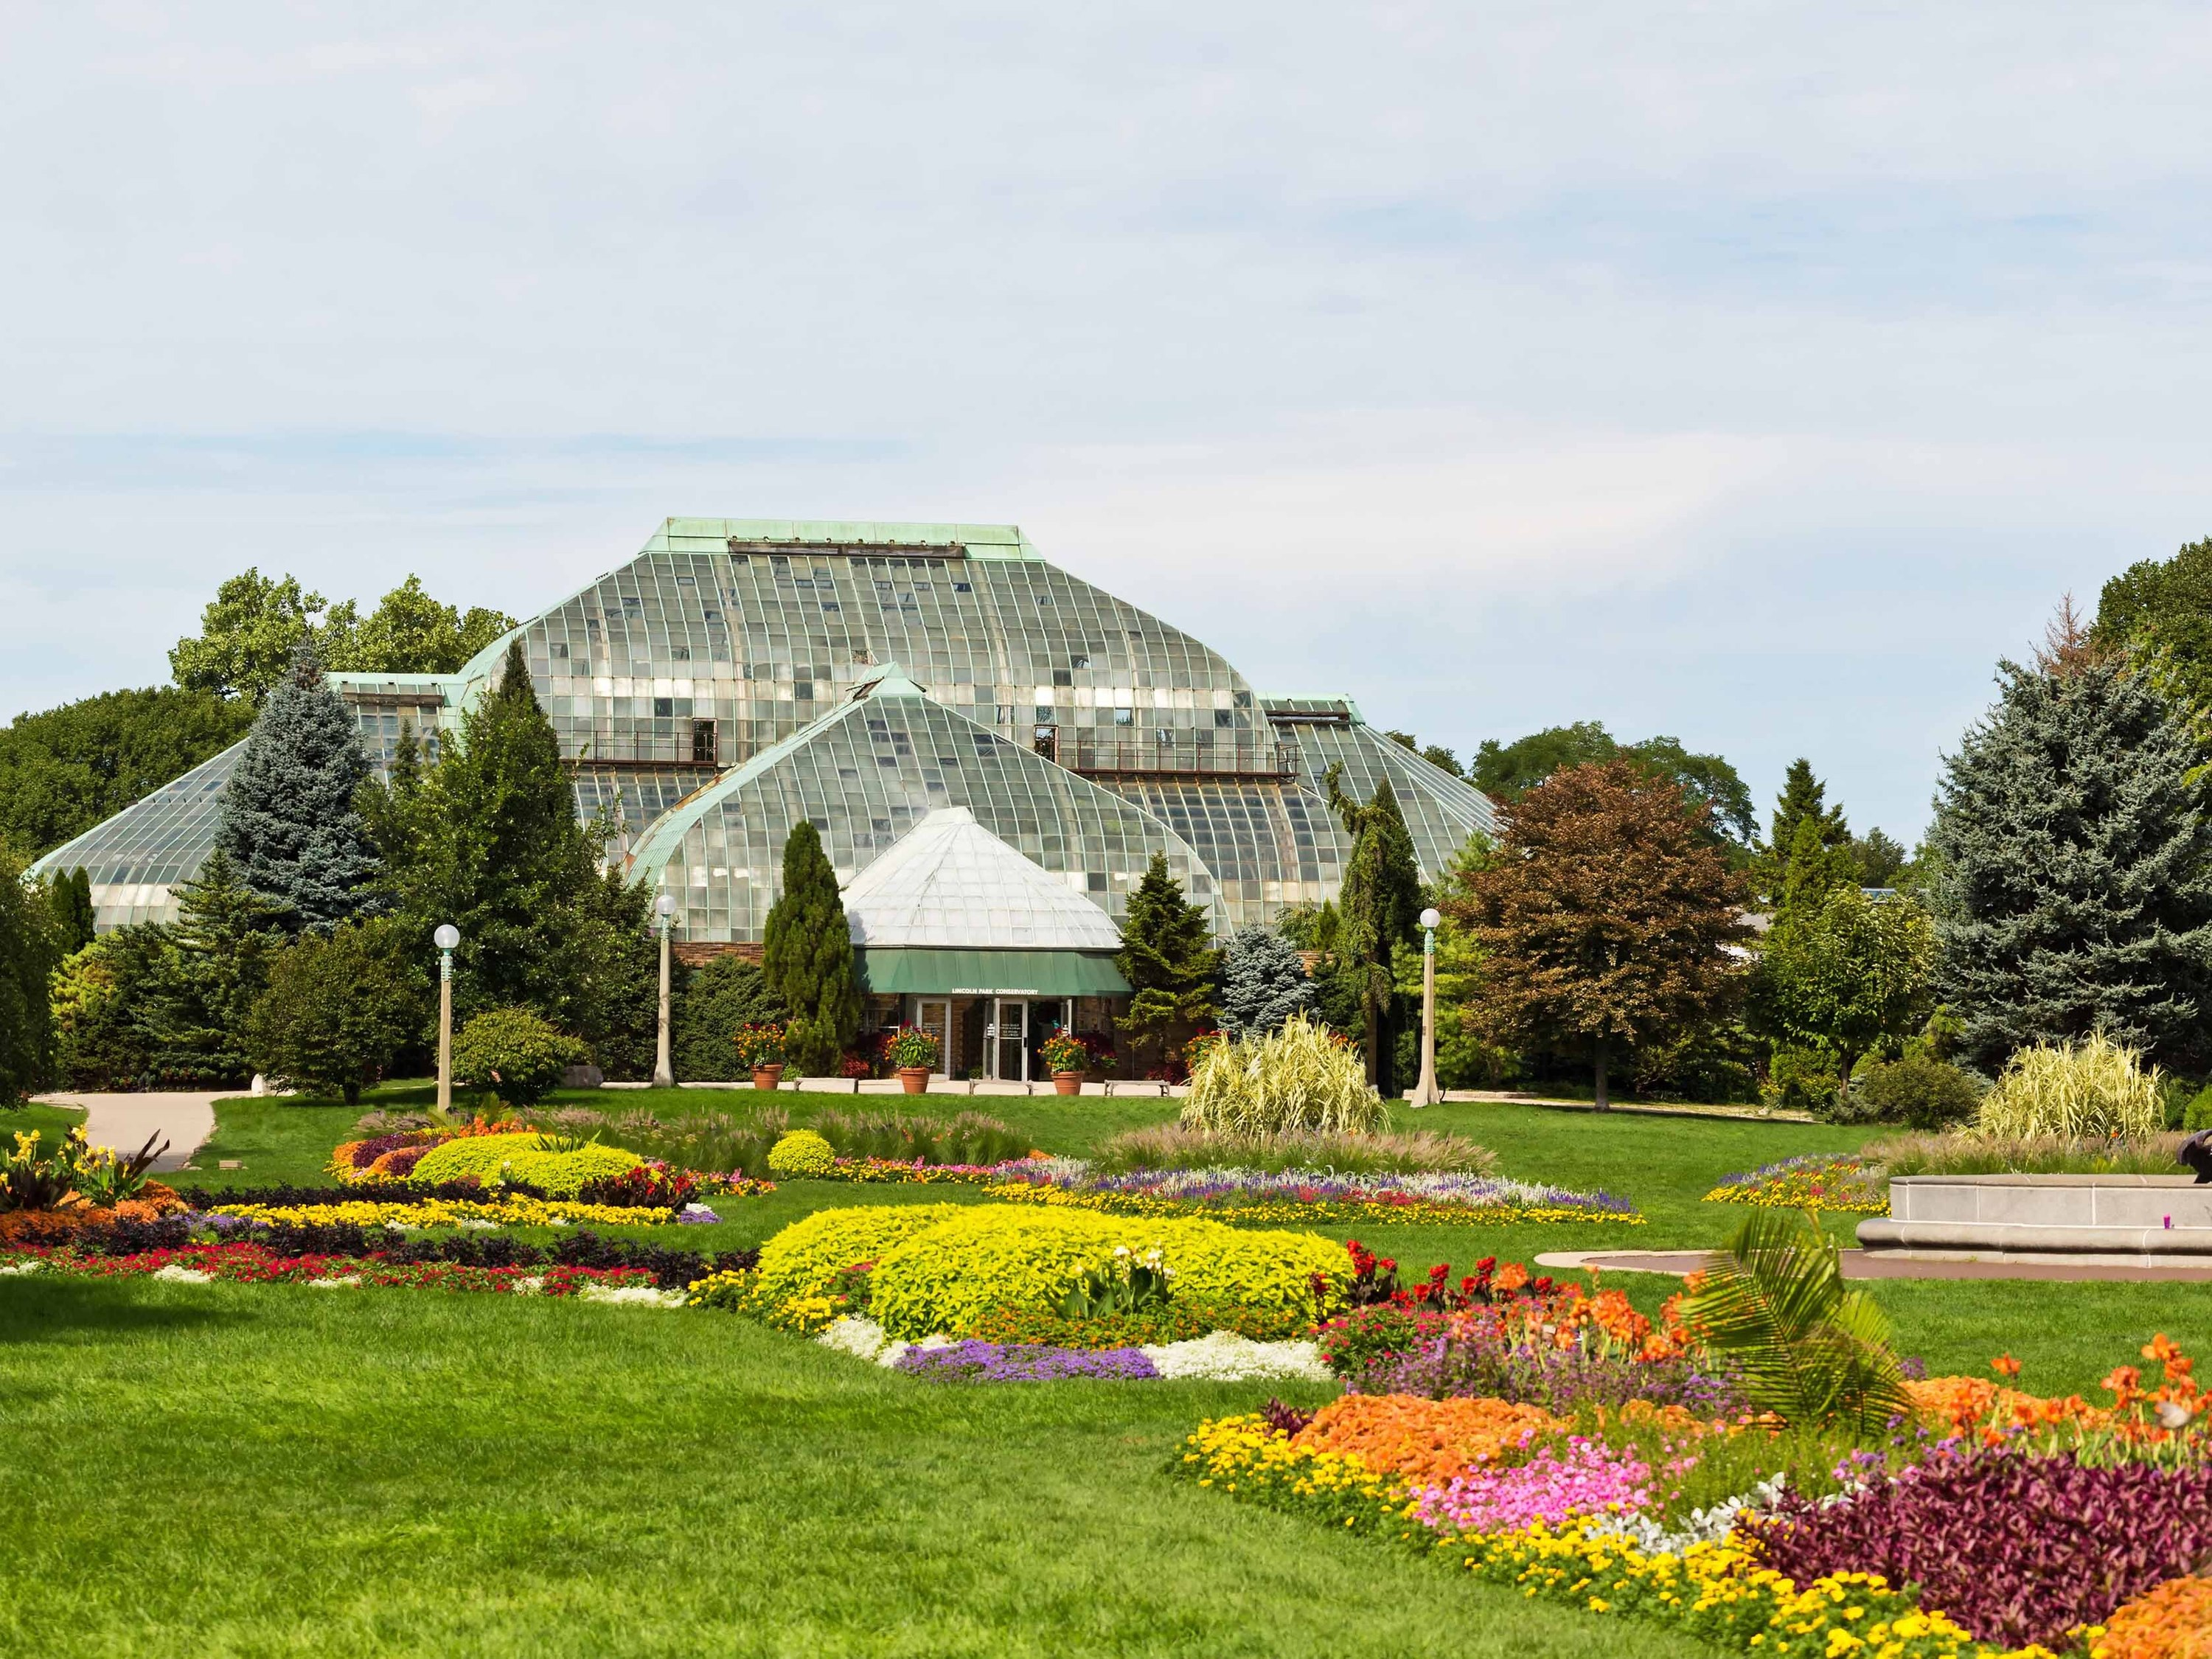 Garfield Park Conservatory begins its phased reopening plan this week